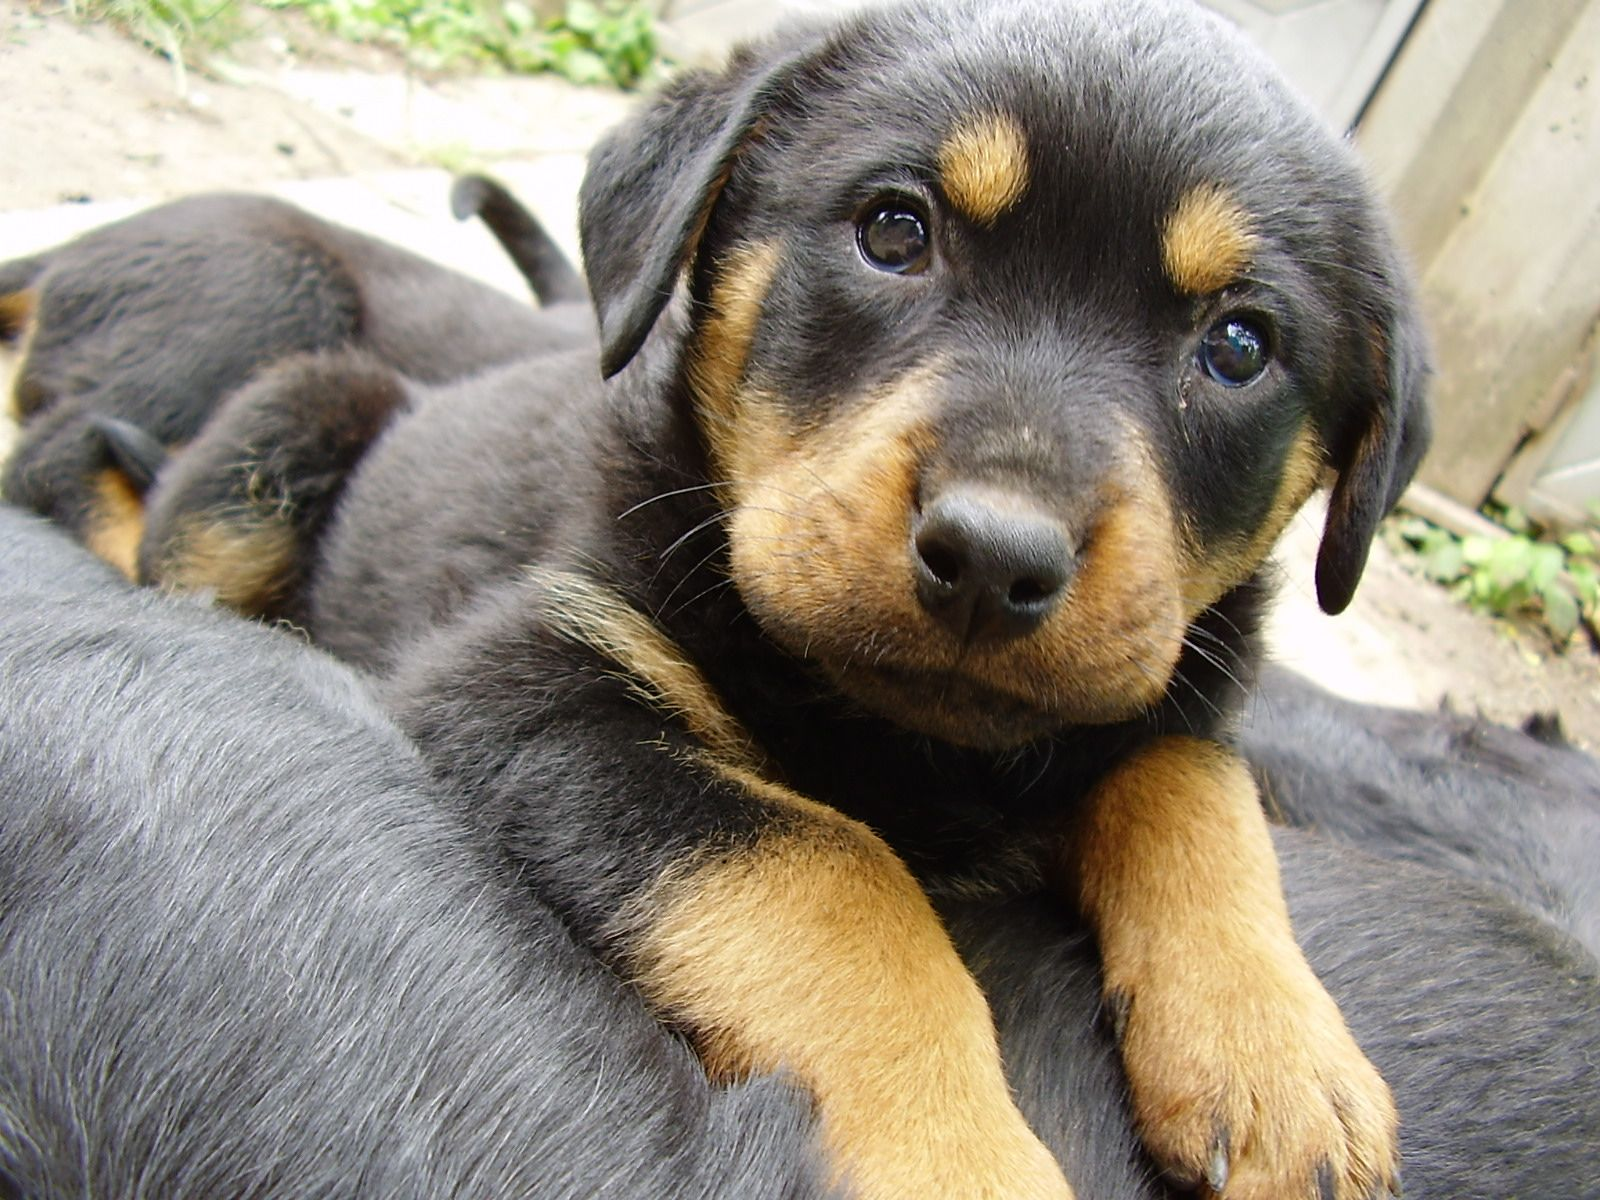 Rottweiler Puppies For Sale Now Rottweiler Puppies Rottweiler